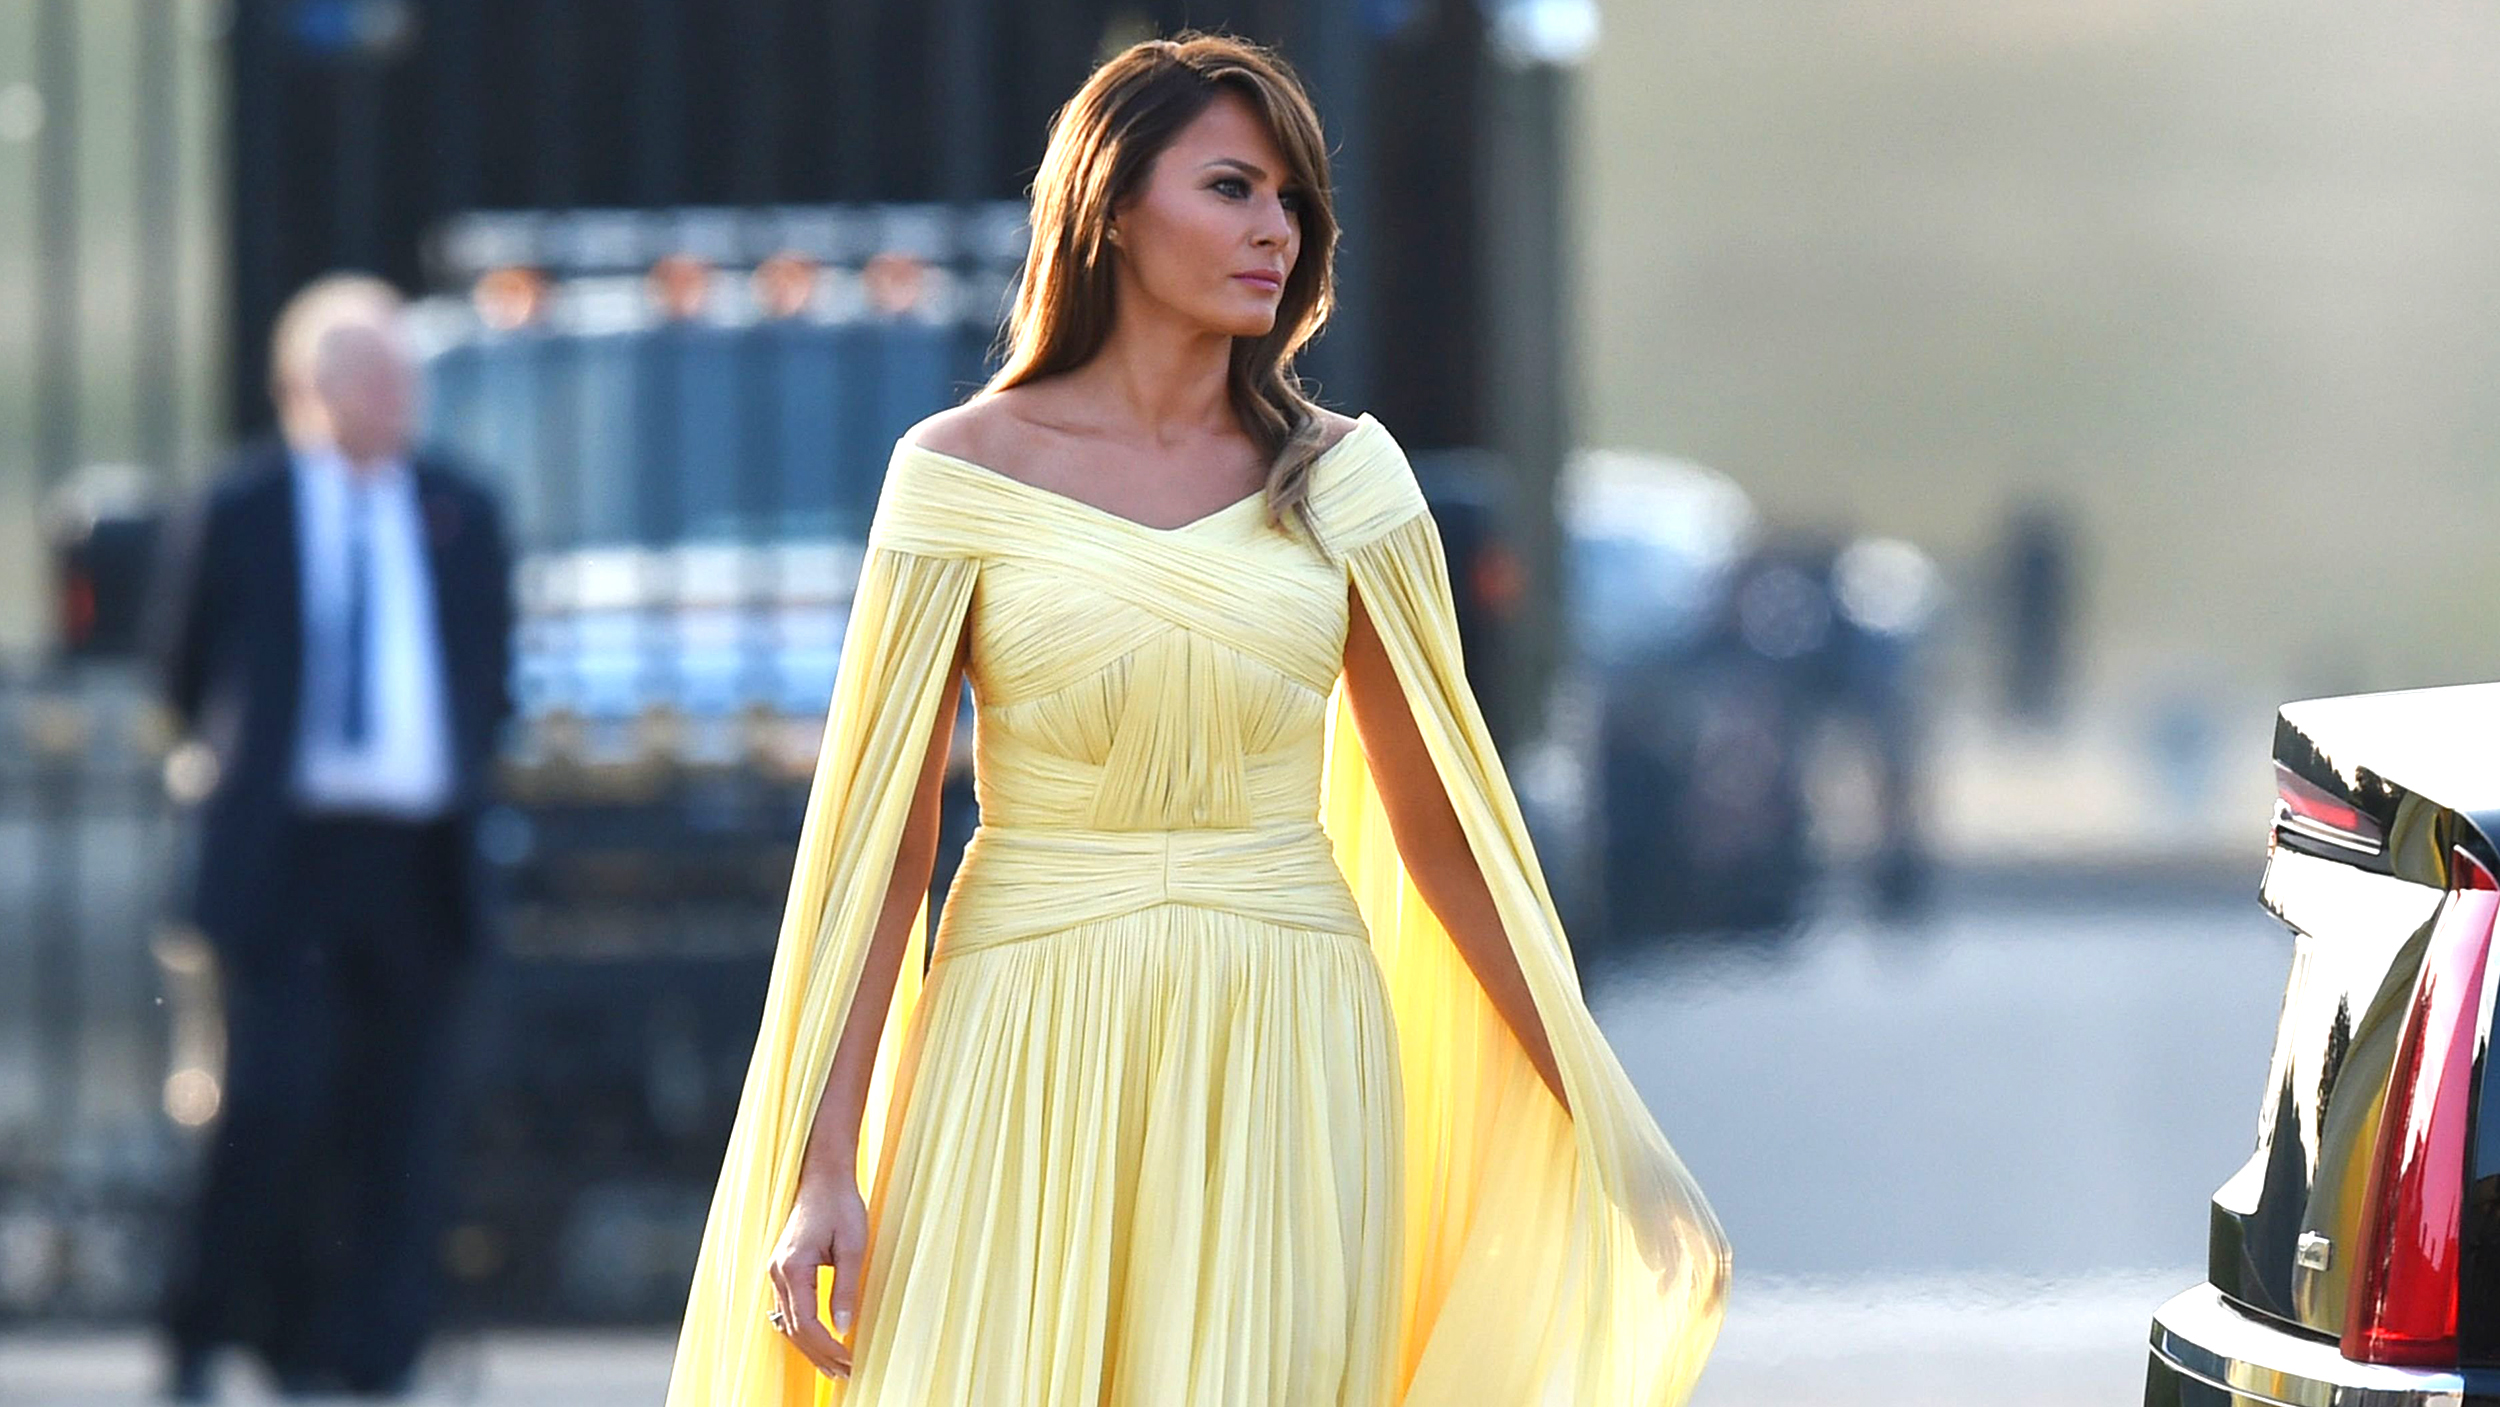 First lady Melania Trump stuns in floaty yellow gown at state dinner ...